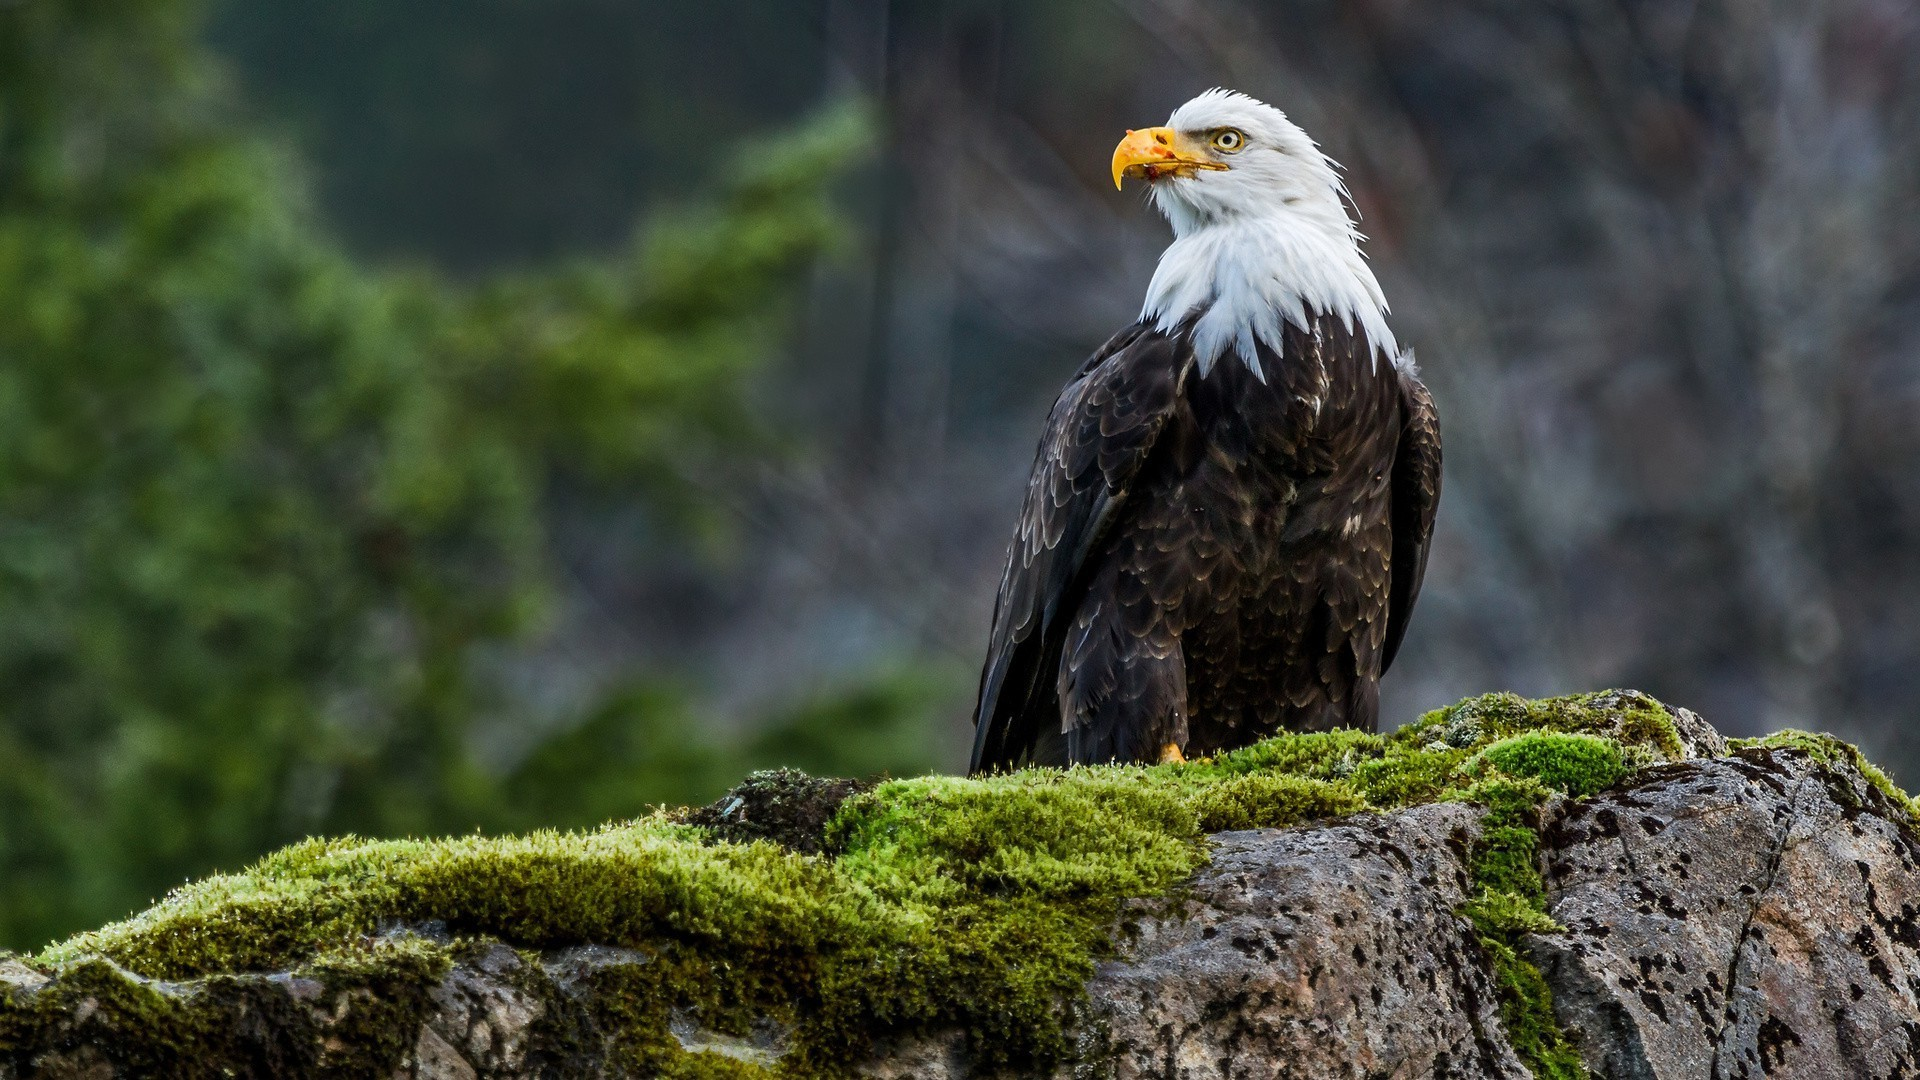 1920x1080  animals, Nature, Wildlife, Eagle, Birds, Moss, Bald Eagle  Wallpapers HD / Desktop and Mobile Backgrounds